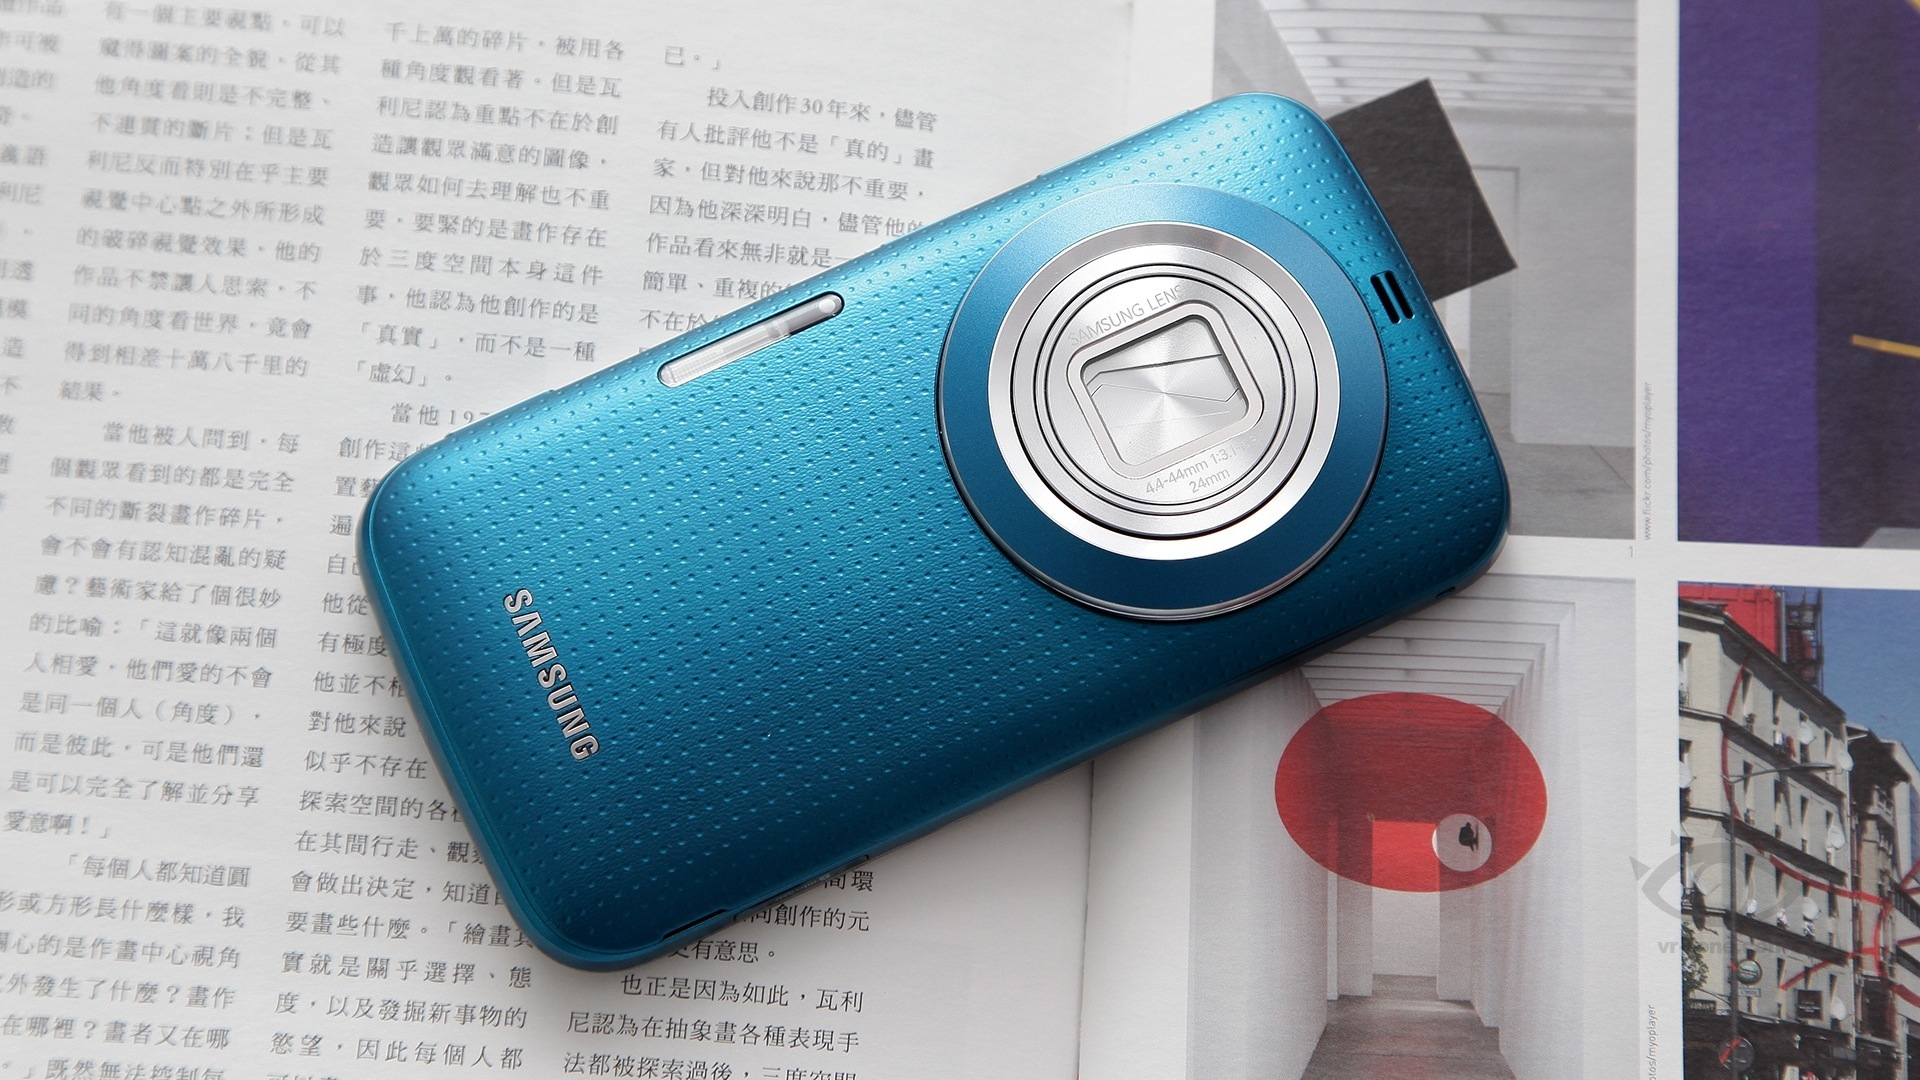 Samsung Galaxy K Zoom: Is It a Camera That Takes Calls or a Phone That Takes Amazing Pictures?